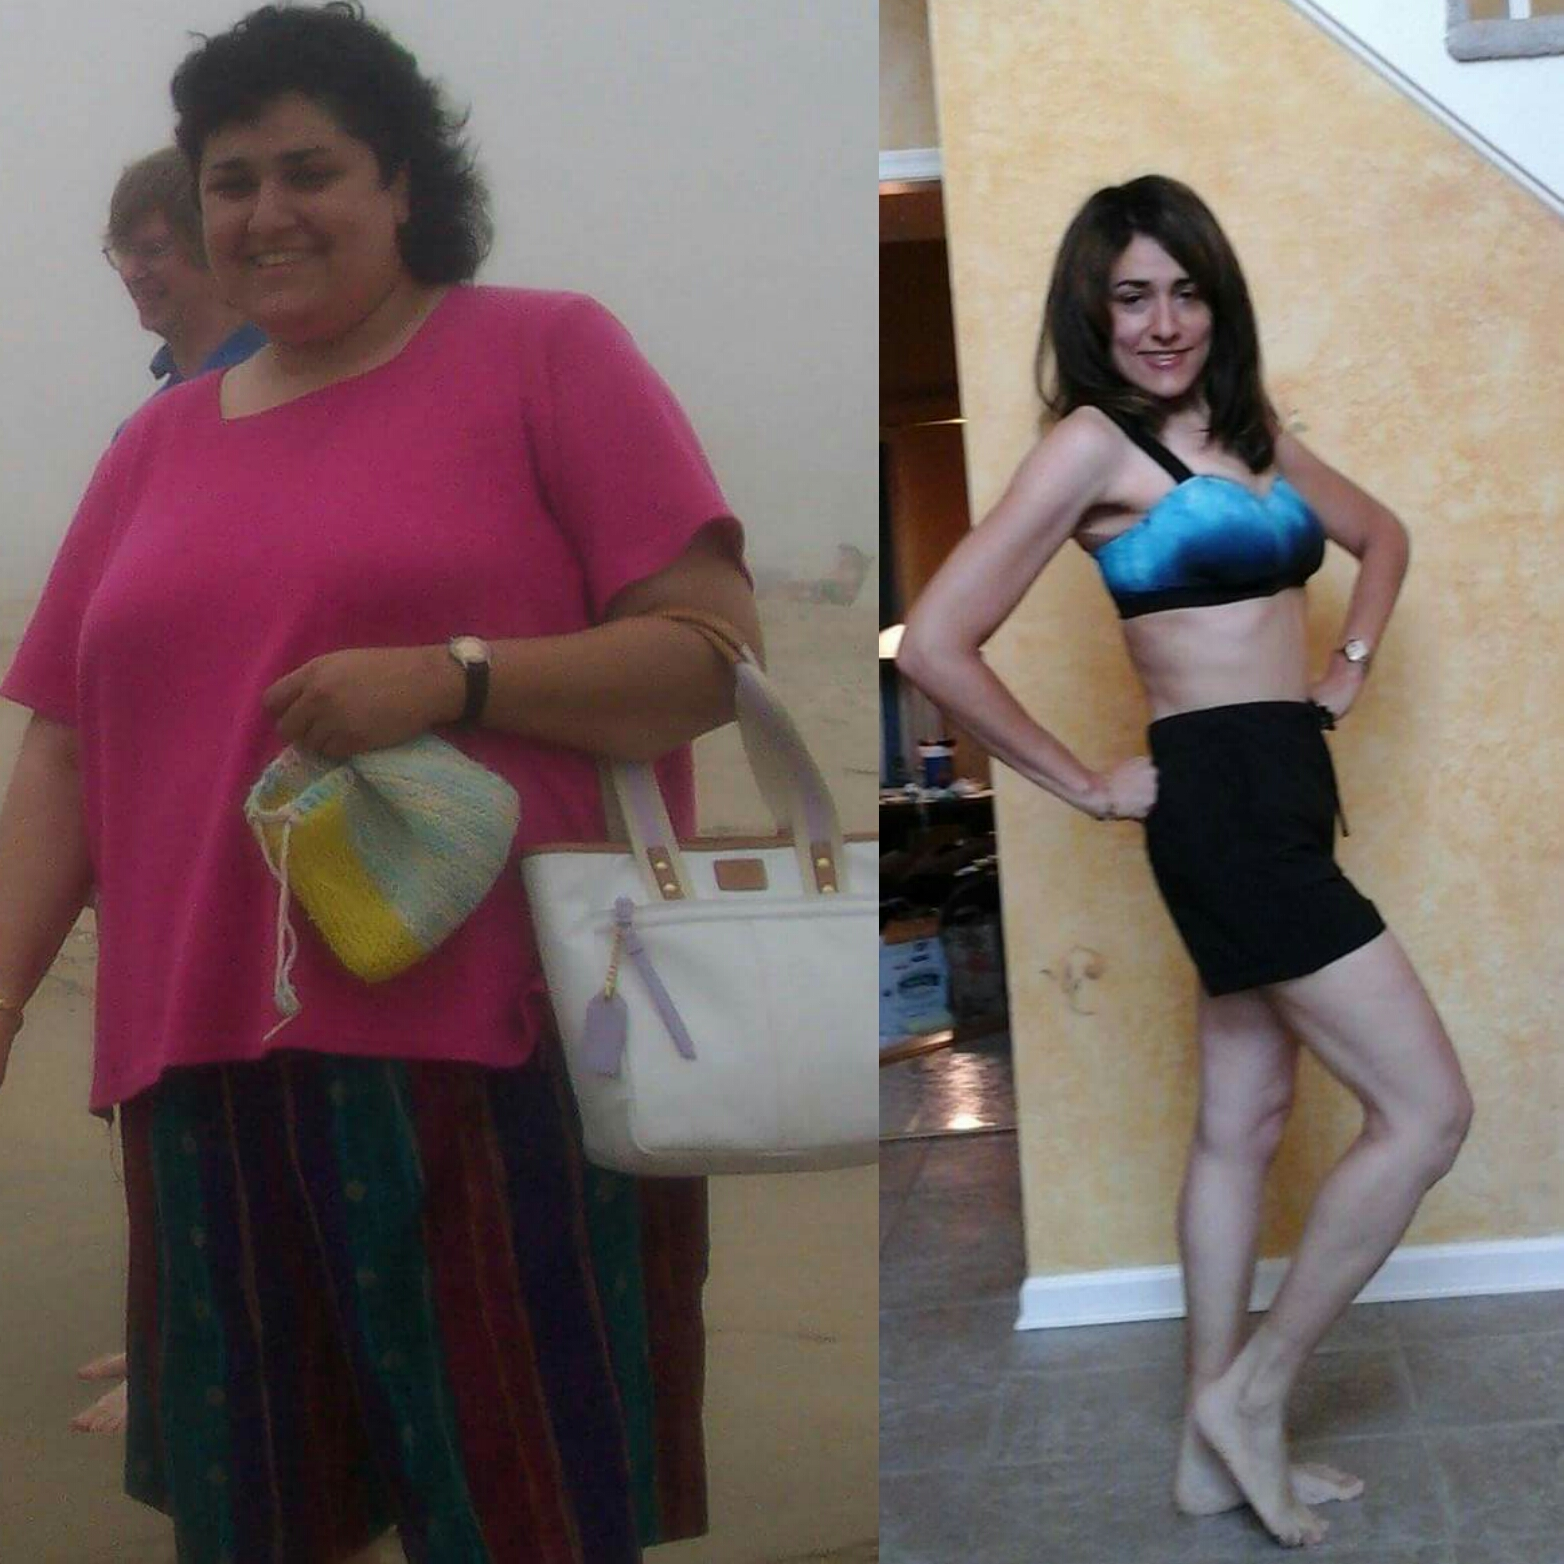 lori before and after exercise